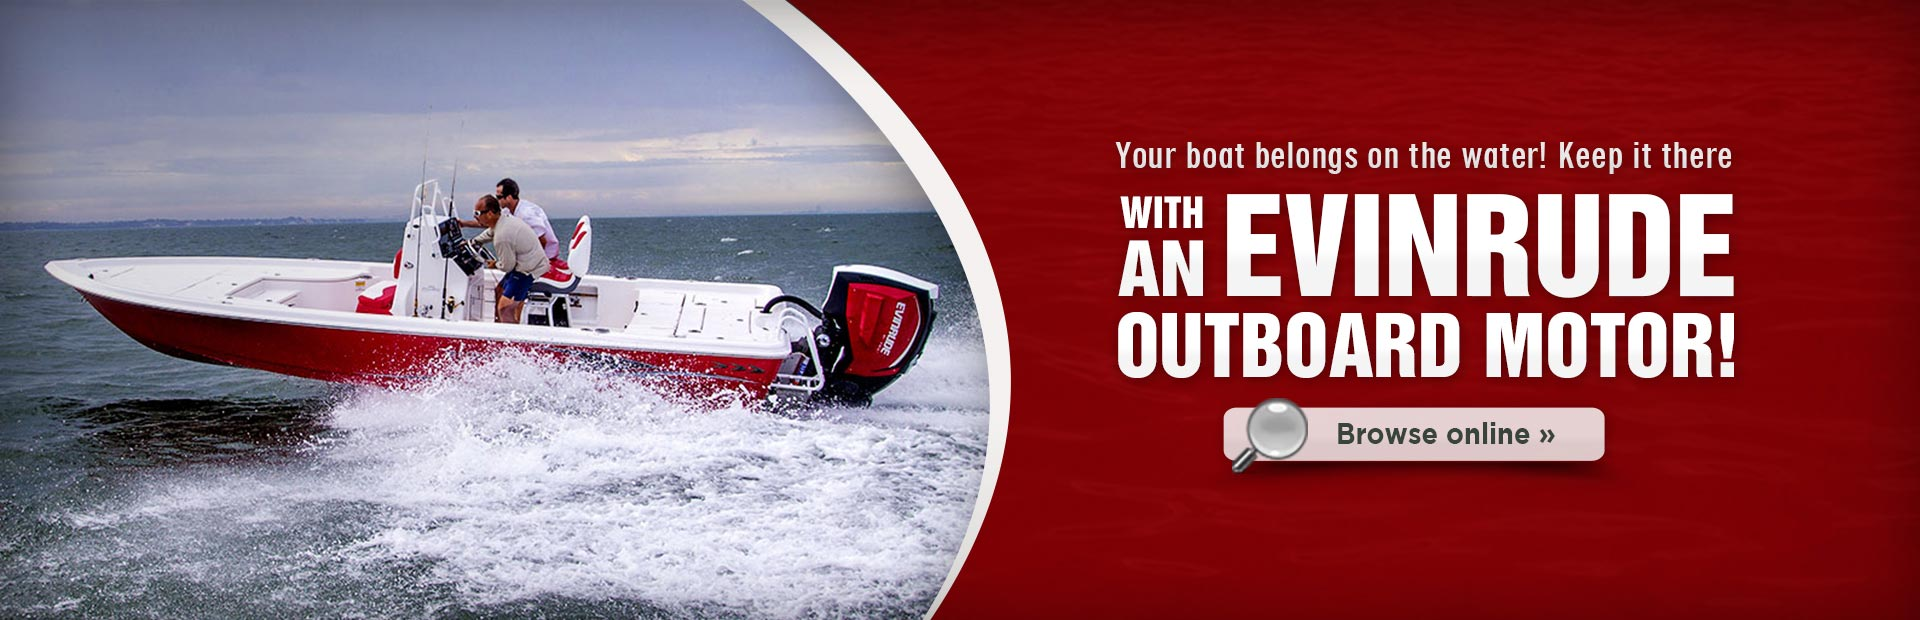 Click here to browse our selection of Evinrude outboard motors!